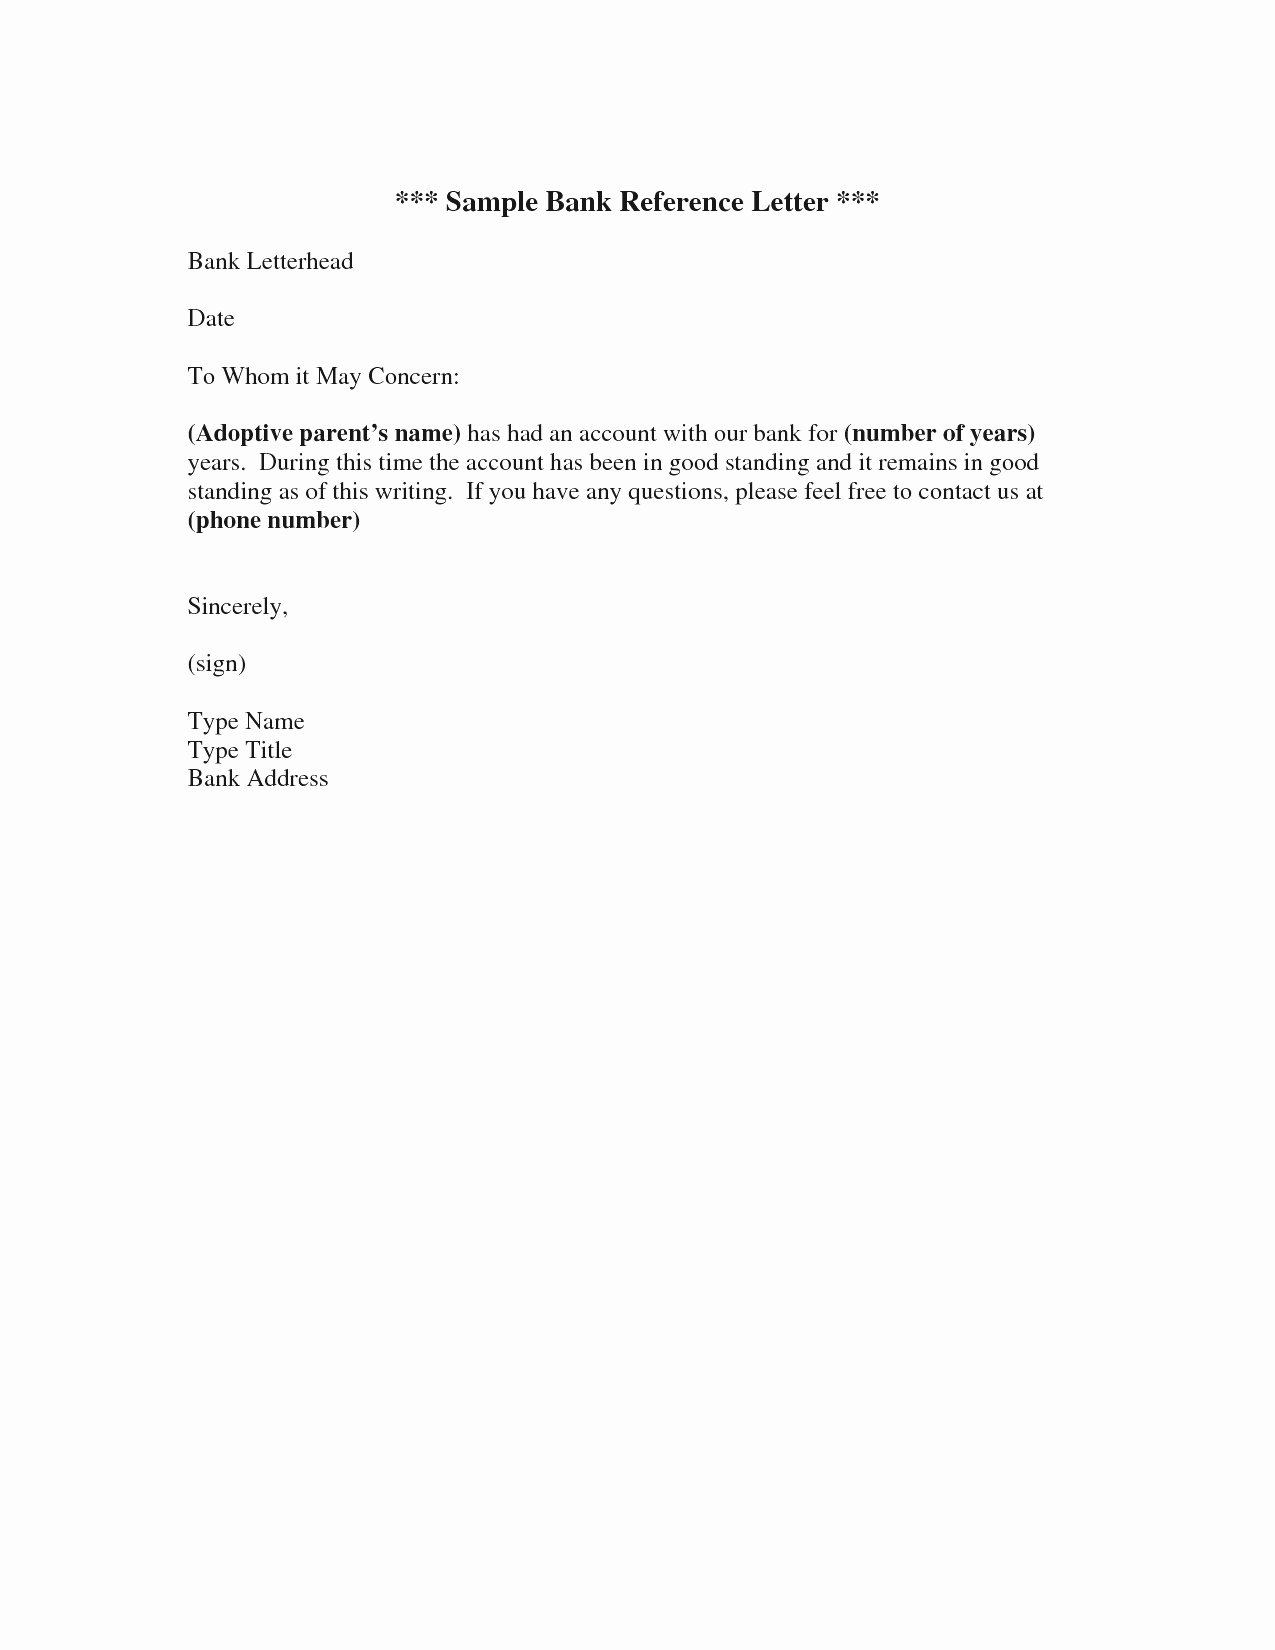 Samples Of Employee Reference Letters Luxury Business Reference Letter Template Example Mughals